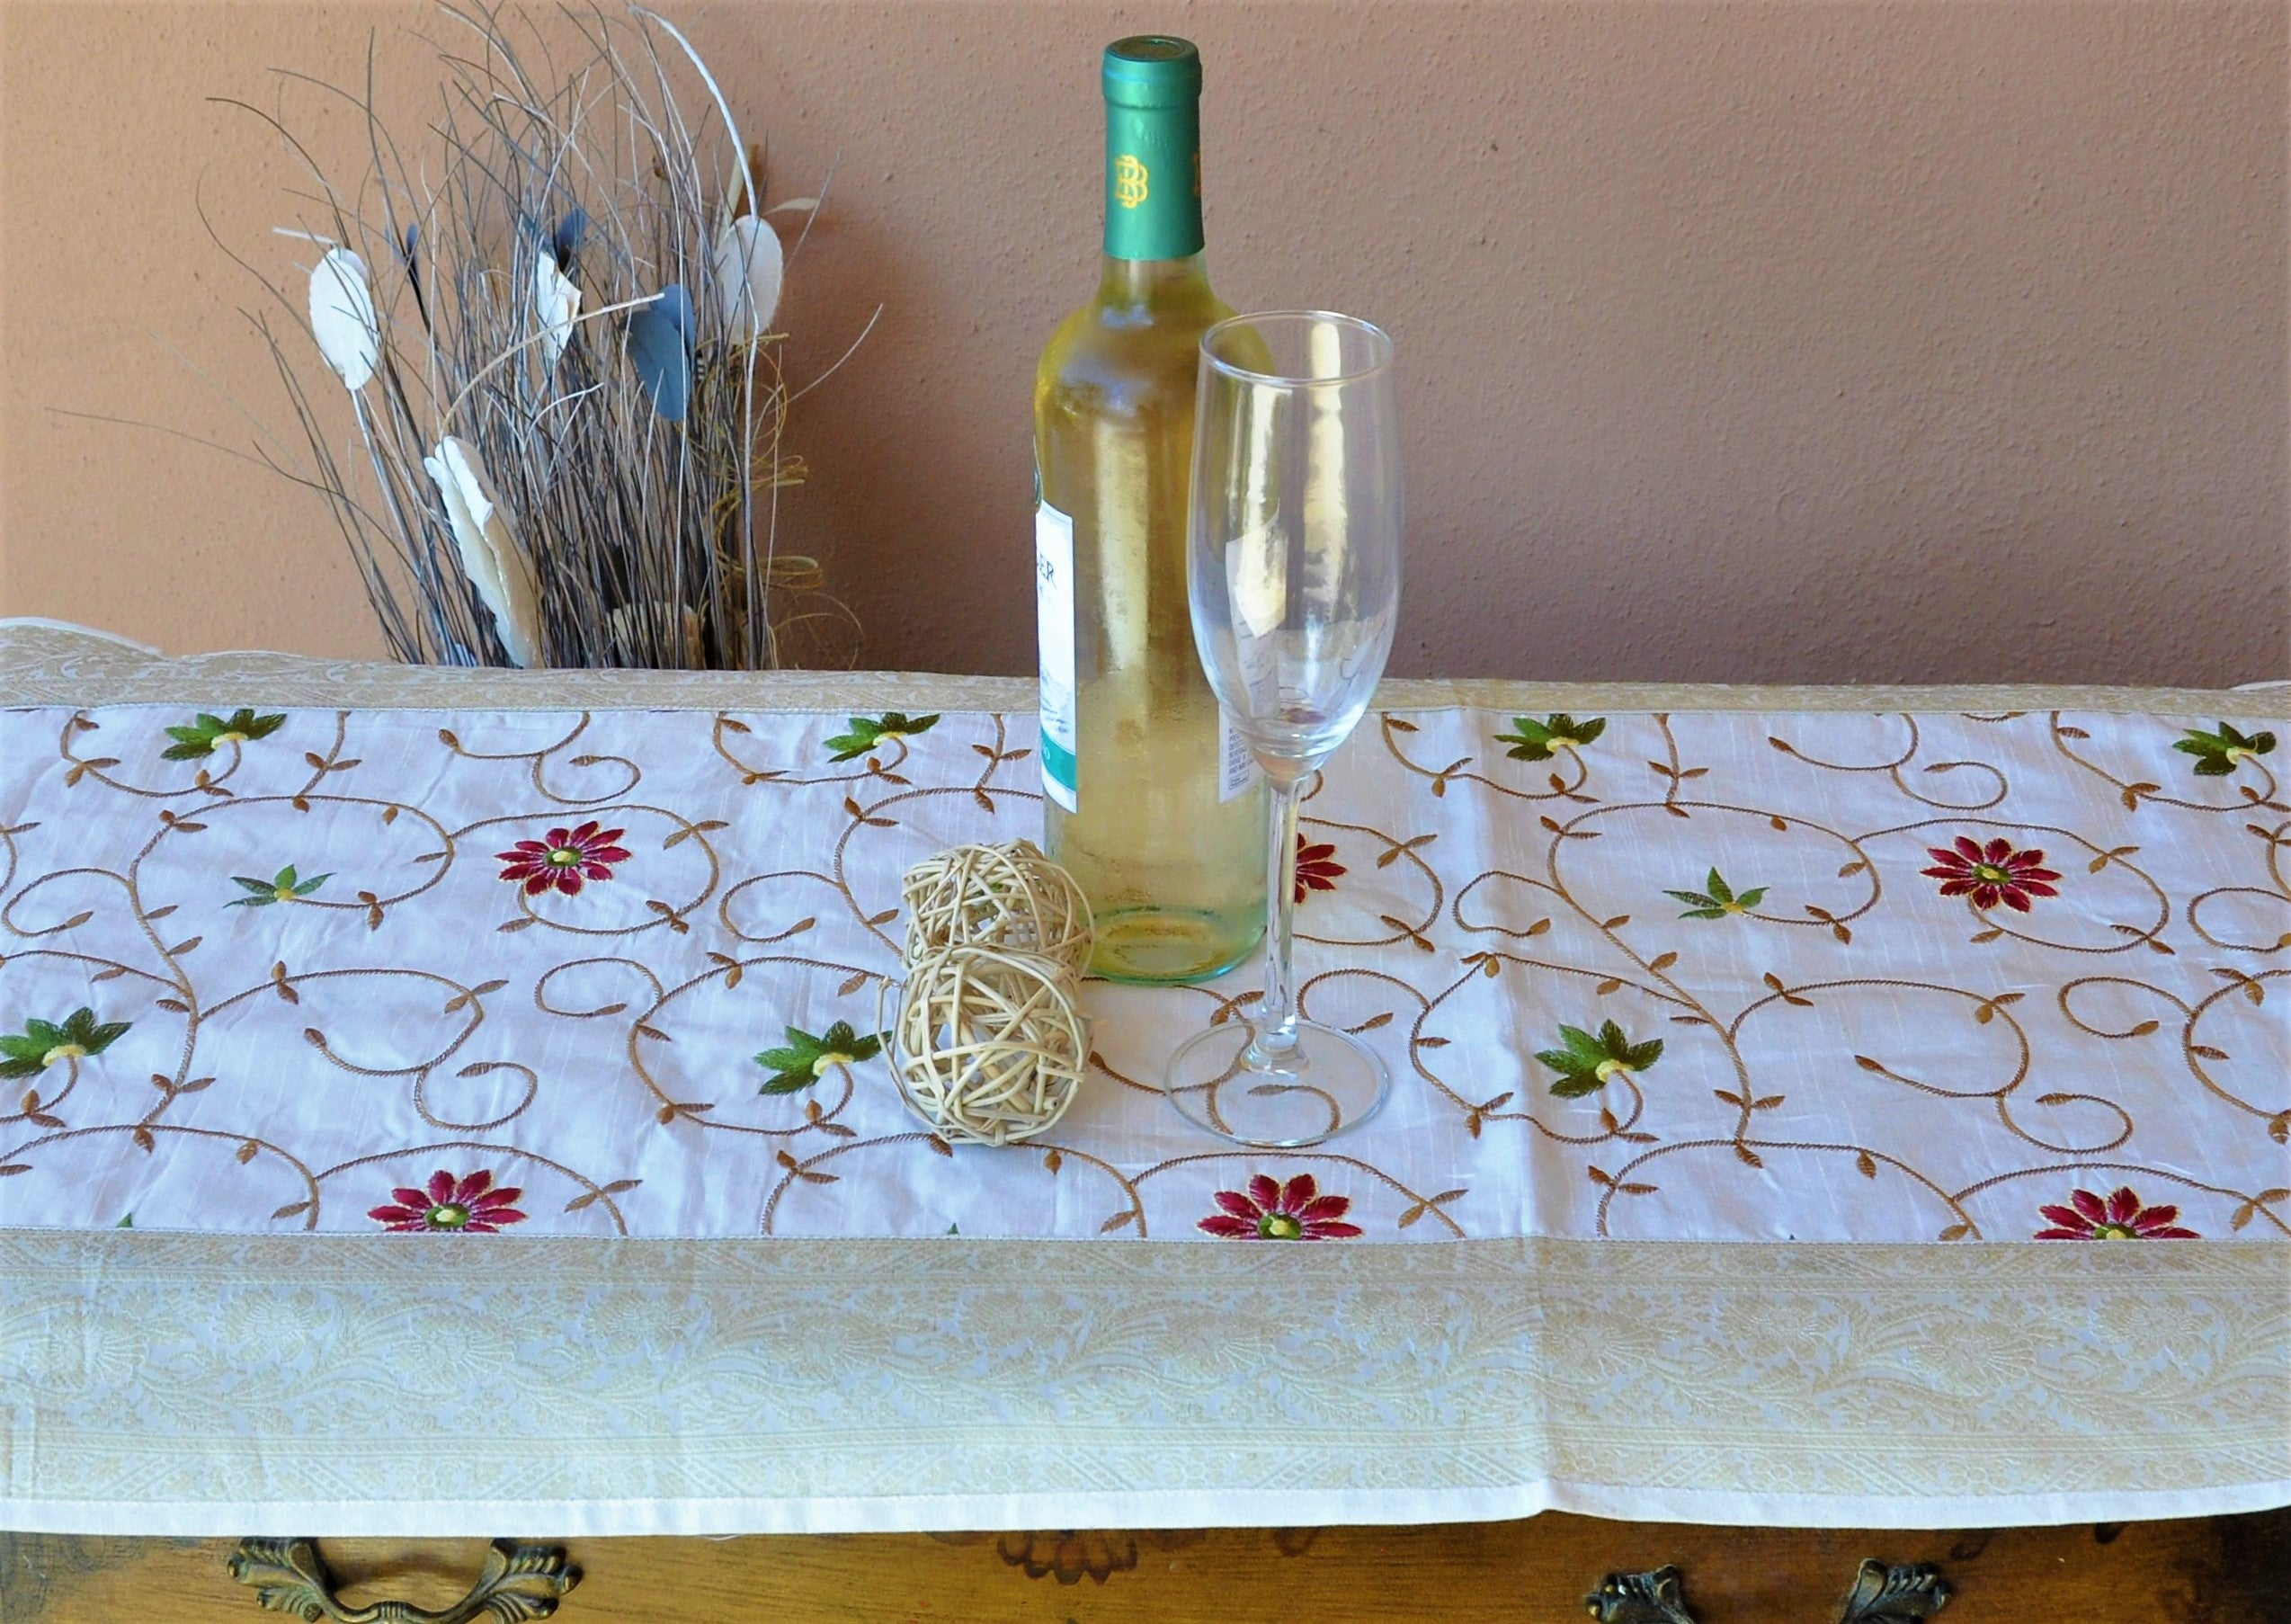 "Vintage White Luxury Silk Table Runner with Brocade Border - 80"" x 20"""